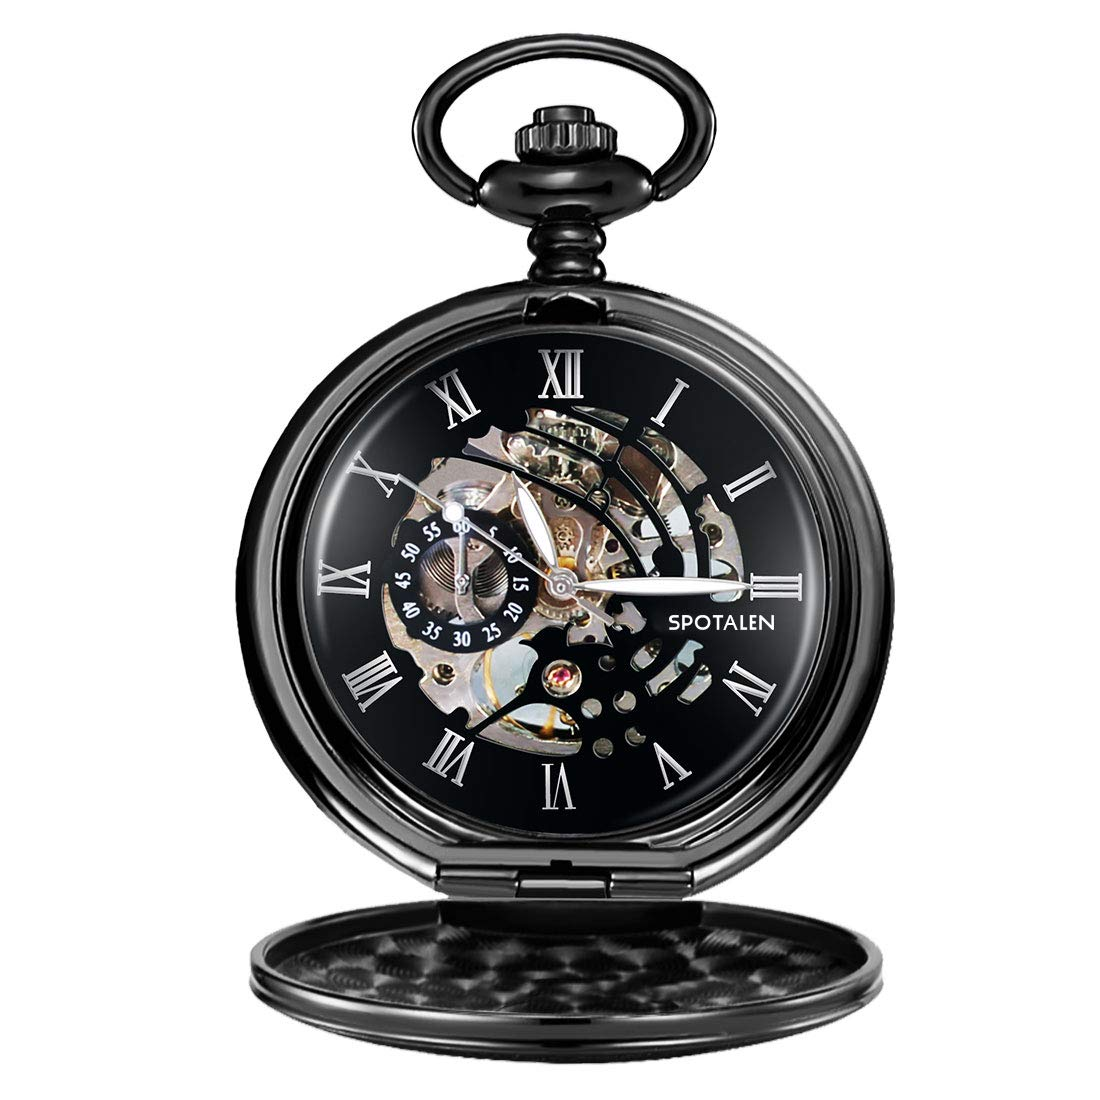 Pocket Watch Mechanical Retro Classic Smooth Antique Men Pocket Watch with Detachable Chain and Roman Numerals